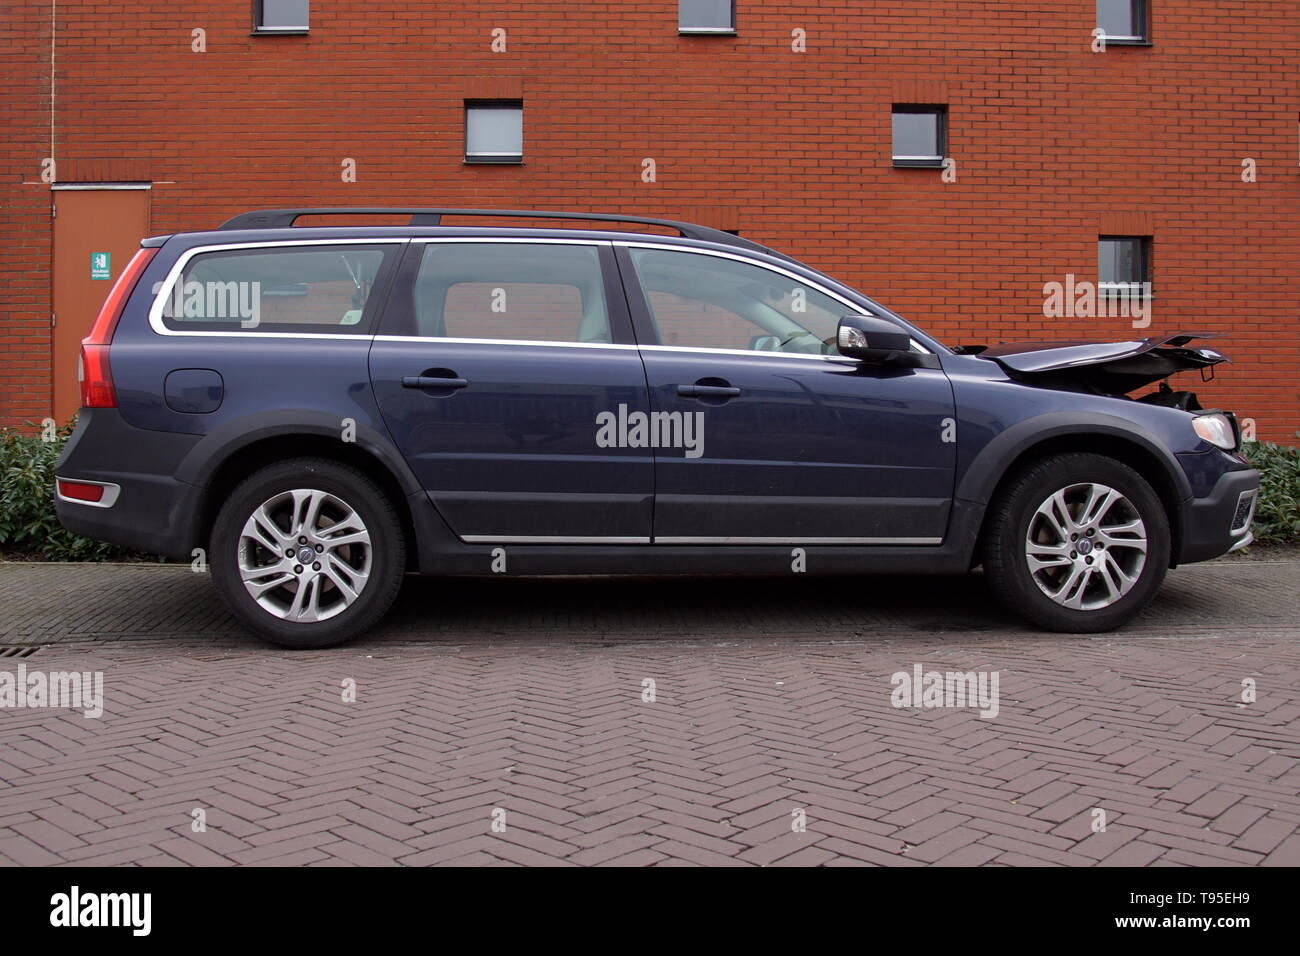 Naarden, the Netherlands - March 23, 2018: Volvo v70 with accident damage parked by the side of the road. Nobody in the vehicle. - Stock Image